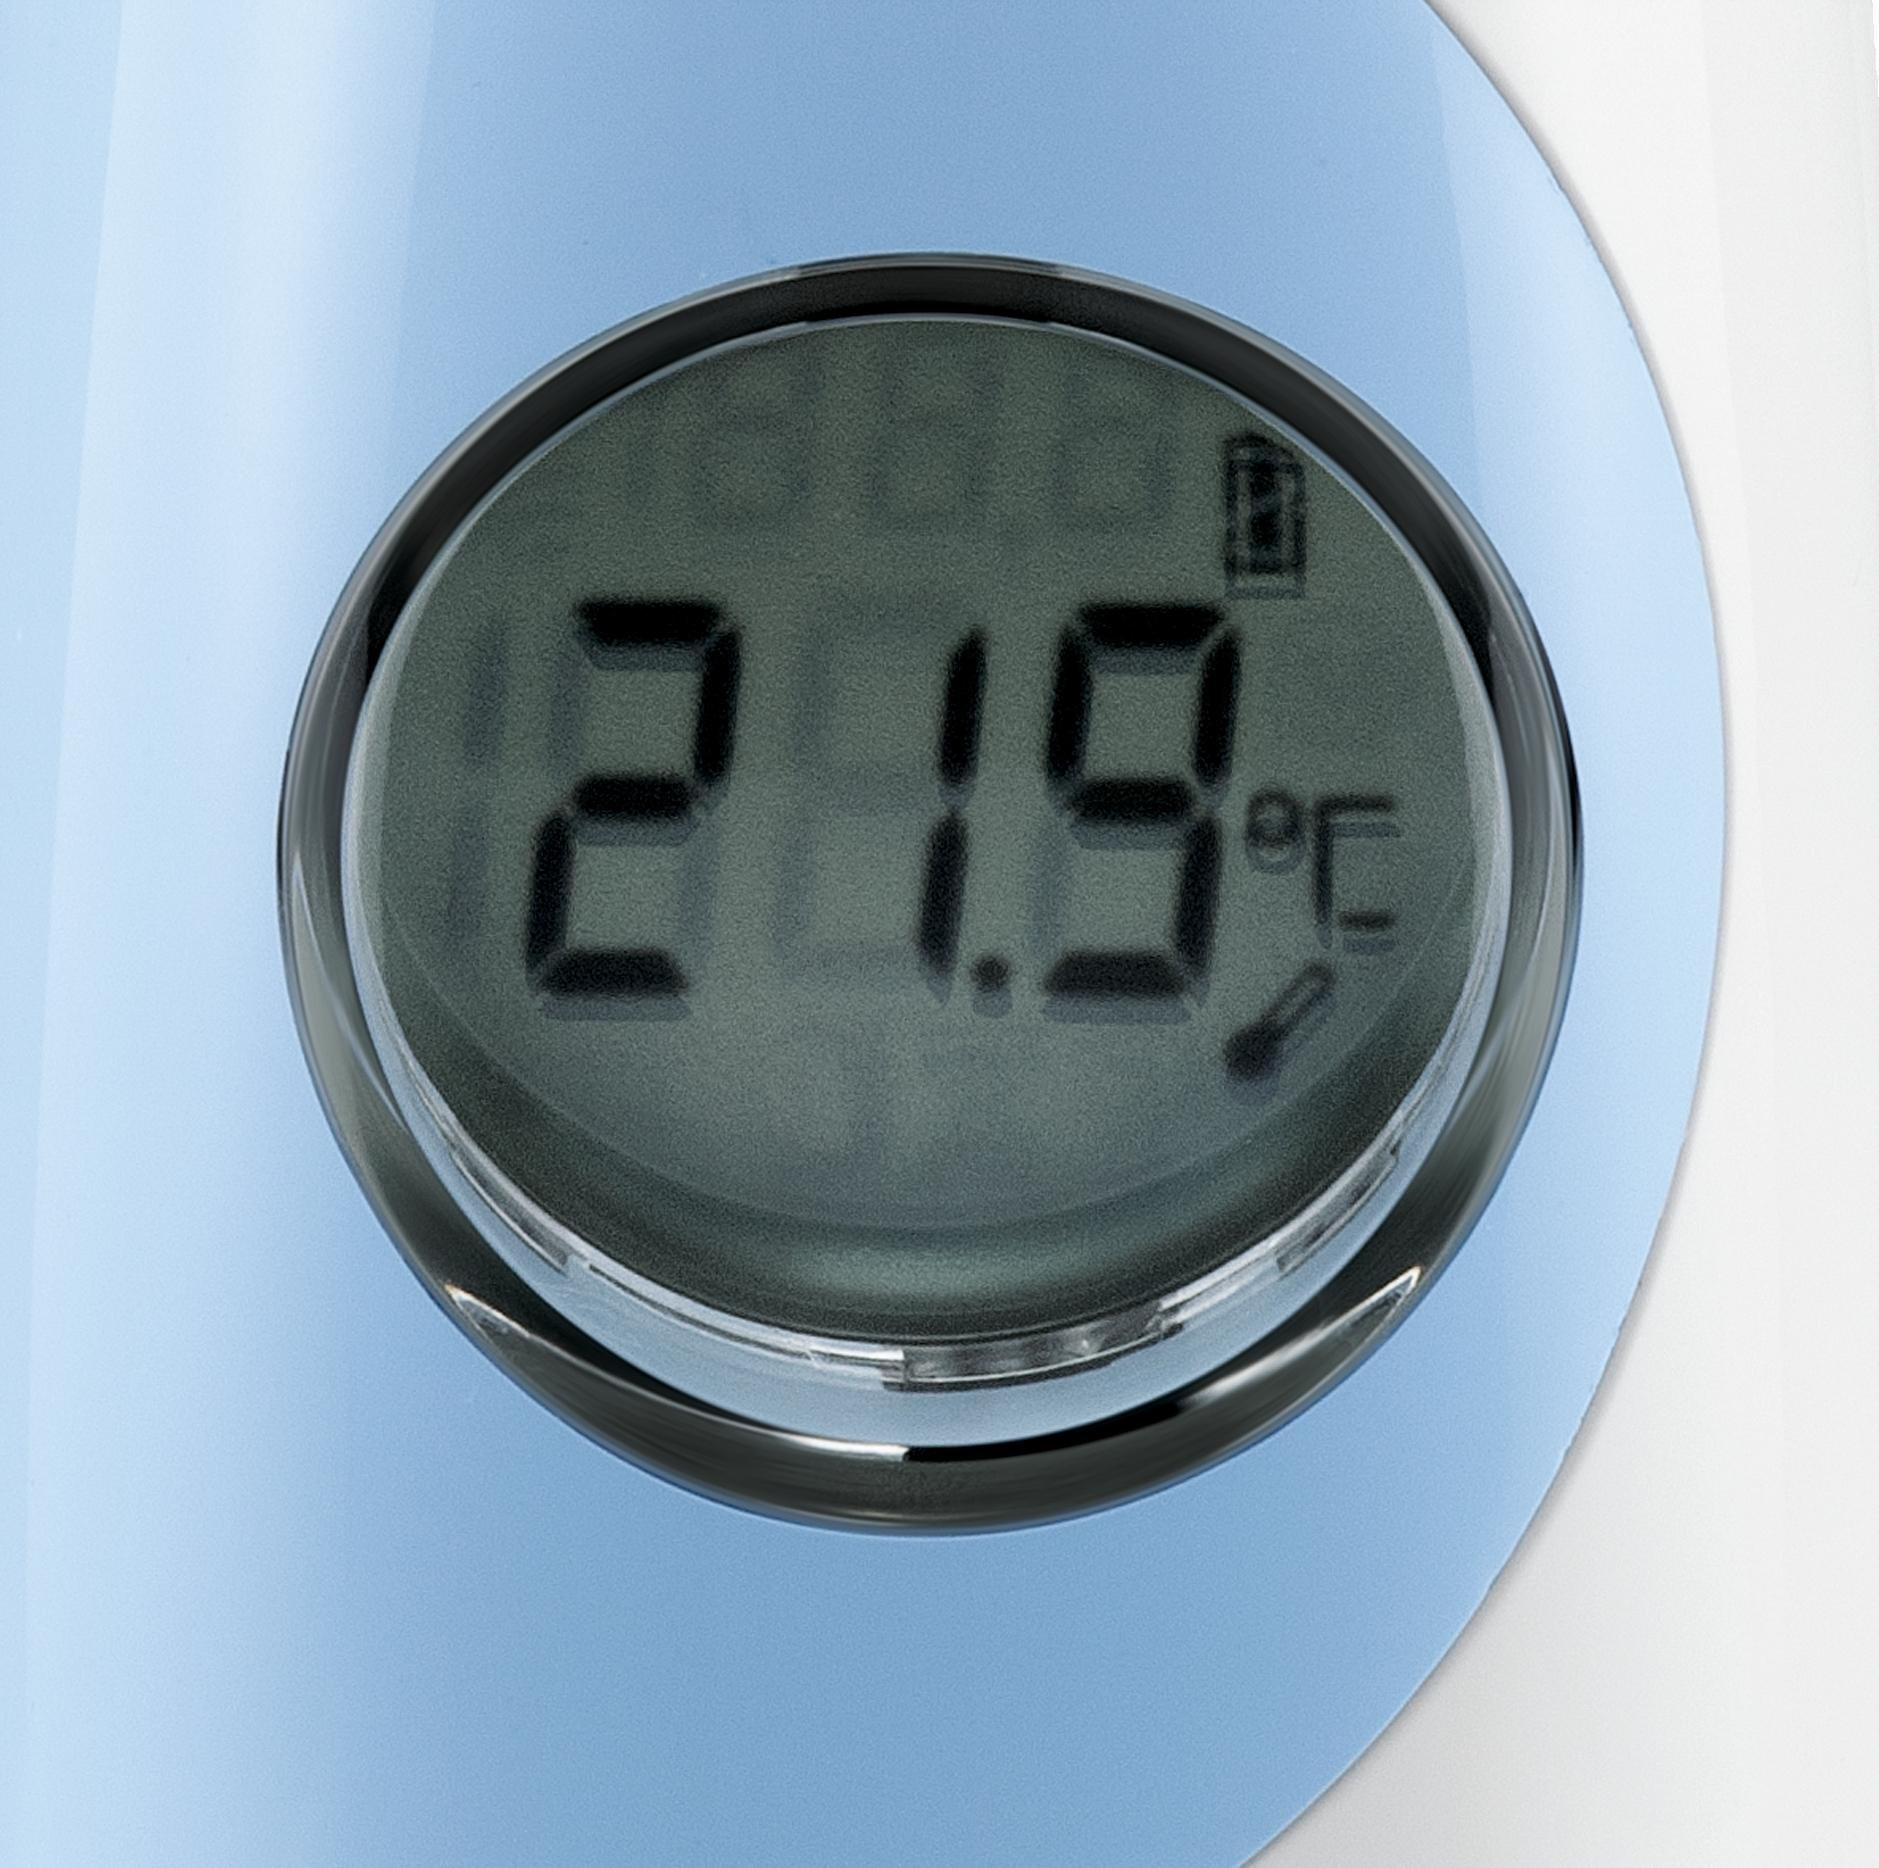 NUK Flash Contactless Baby Thermometer: Amazon.co.uk ...